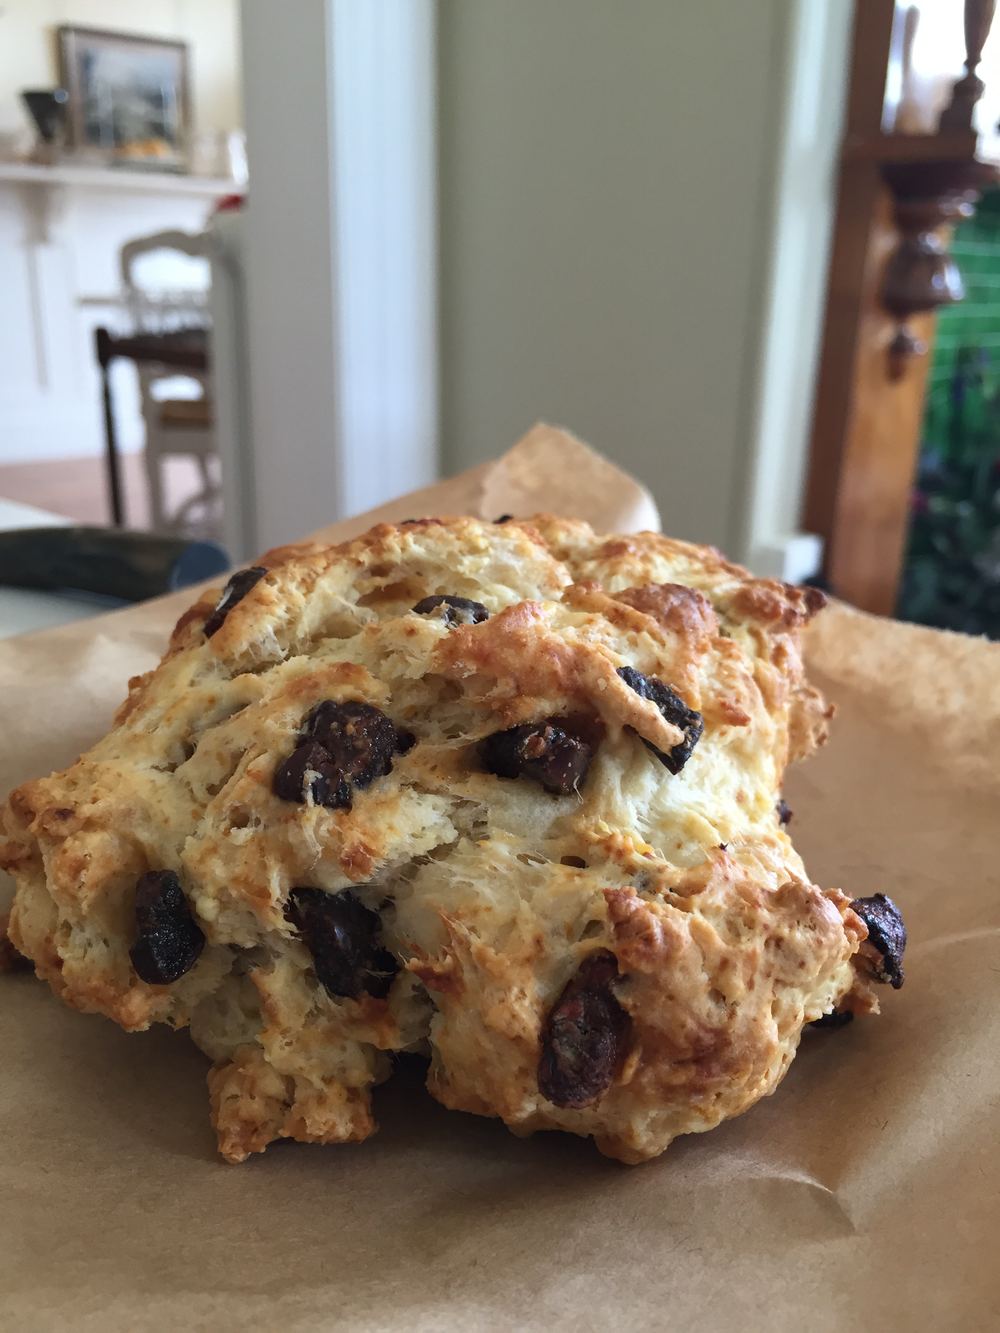 Currant Scone- I (Of Course) Thought it was chocolate Chip